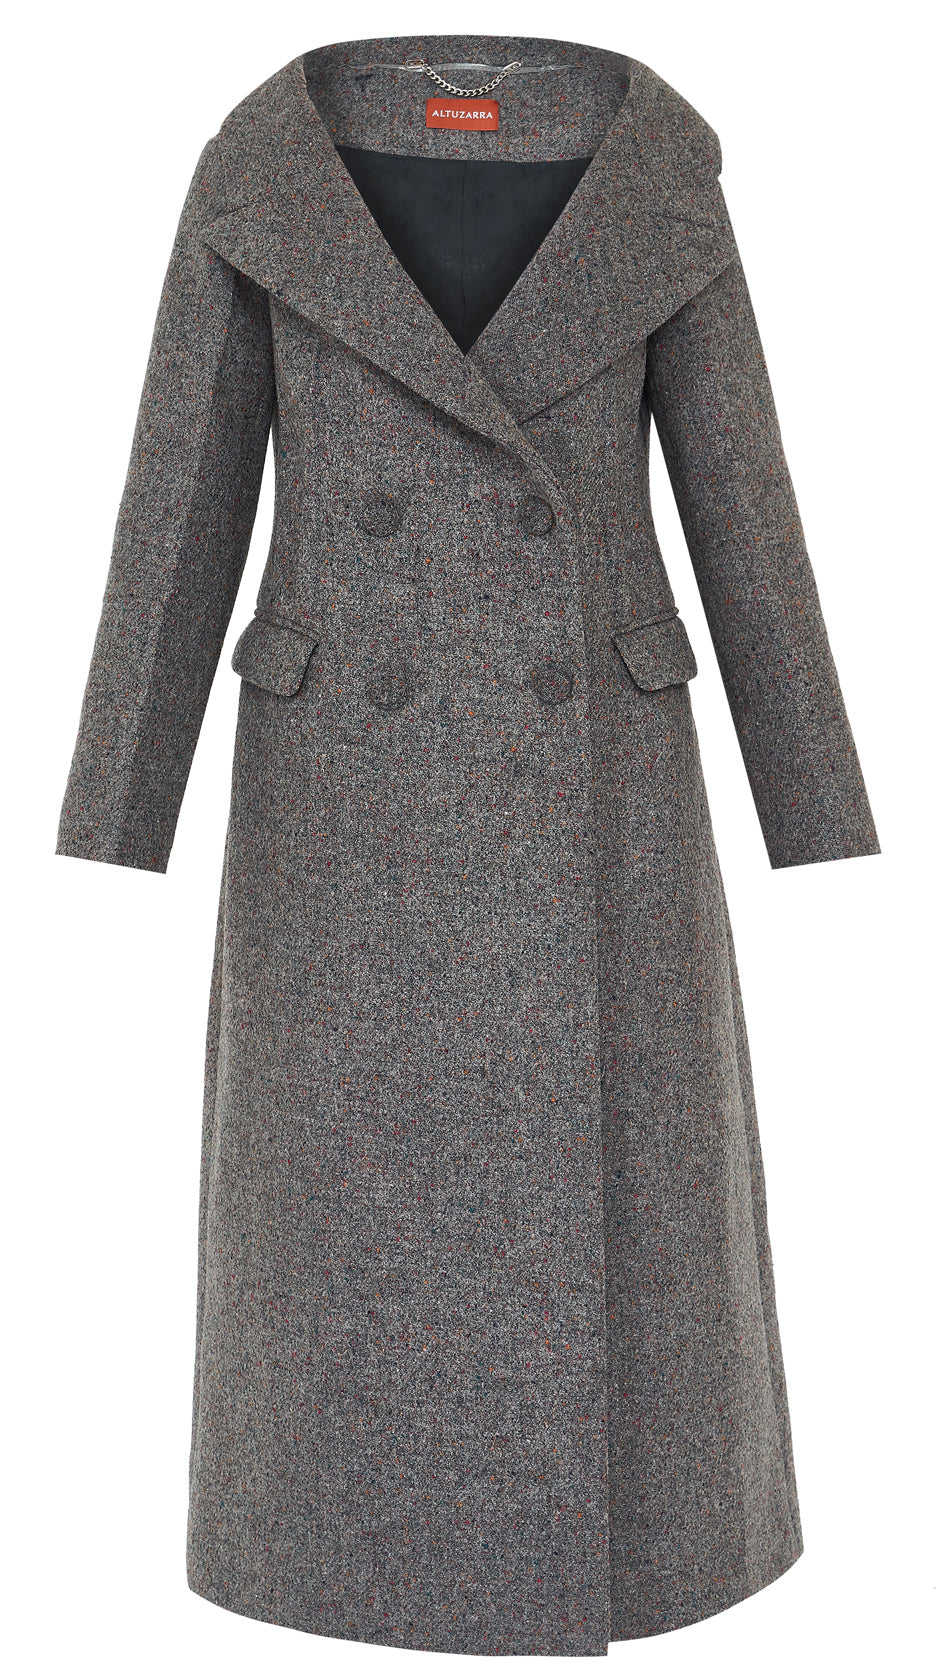 Barbara Melange Wool Blend Coat